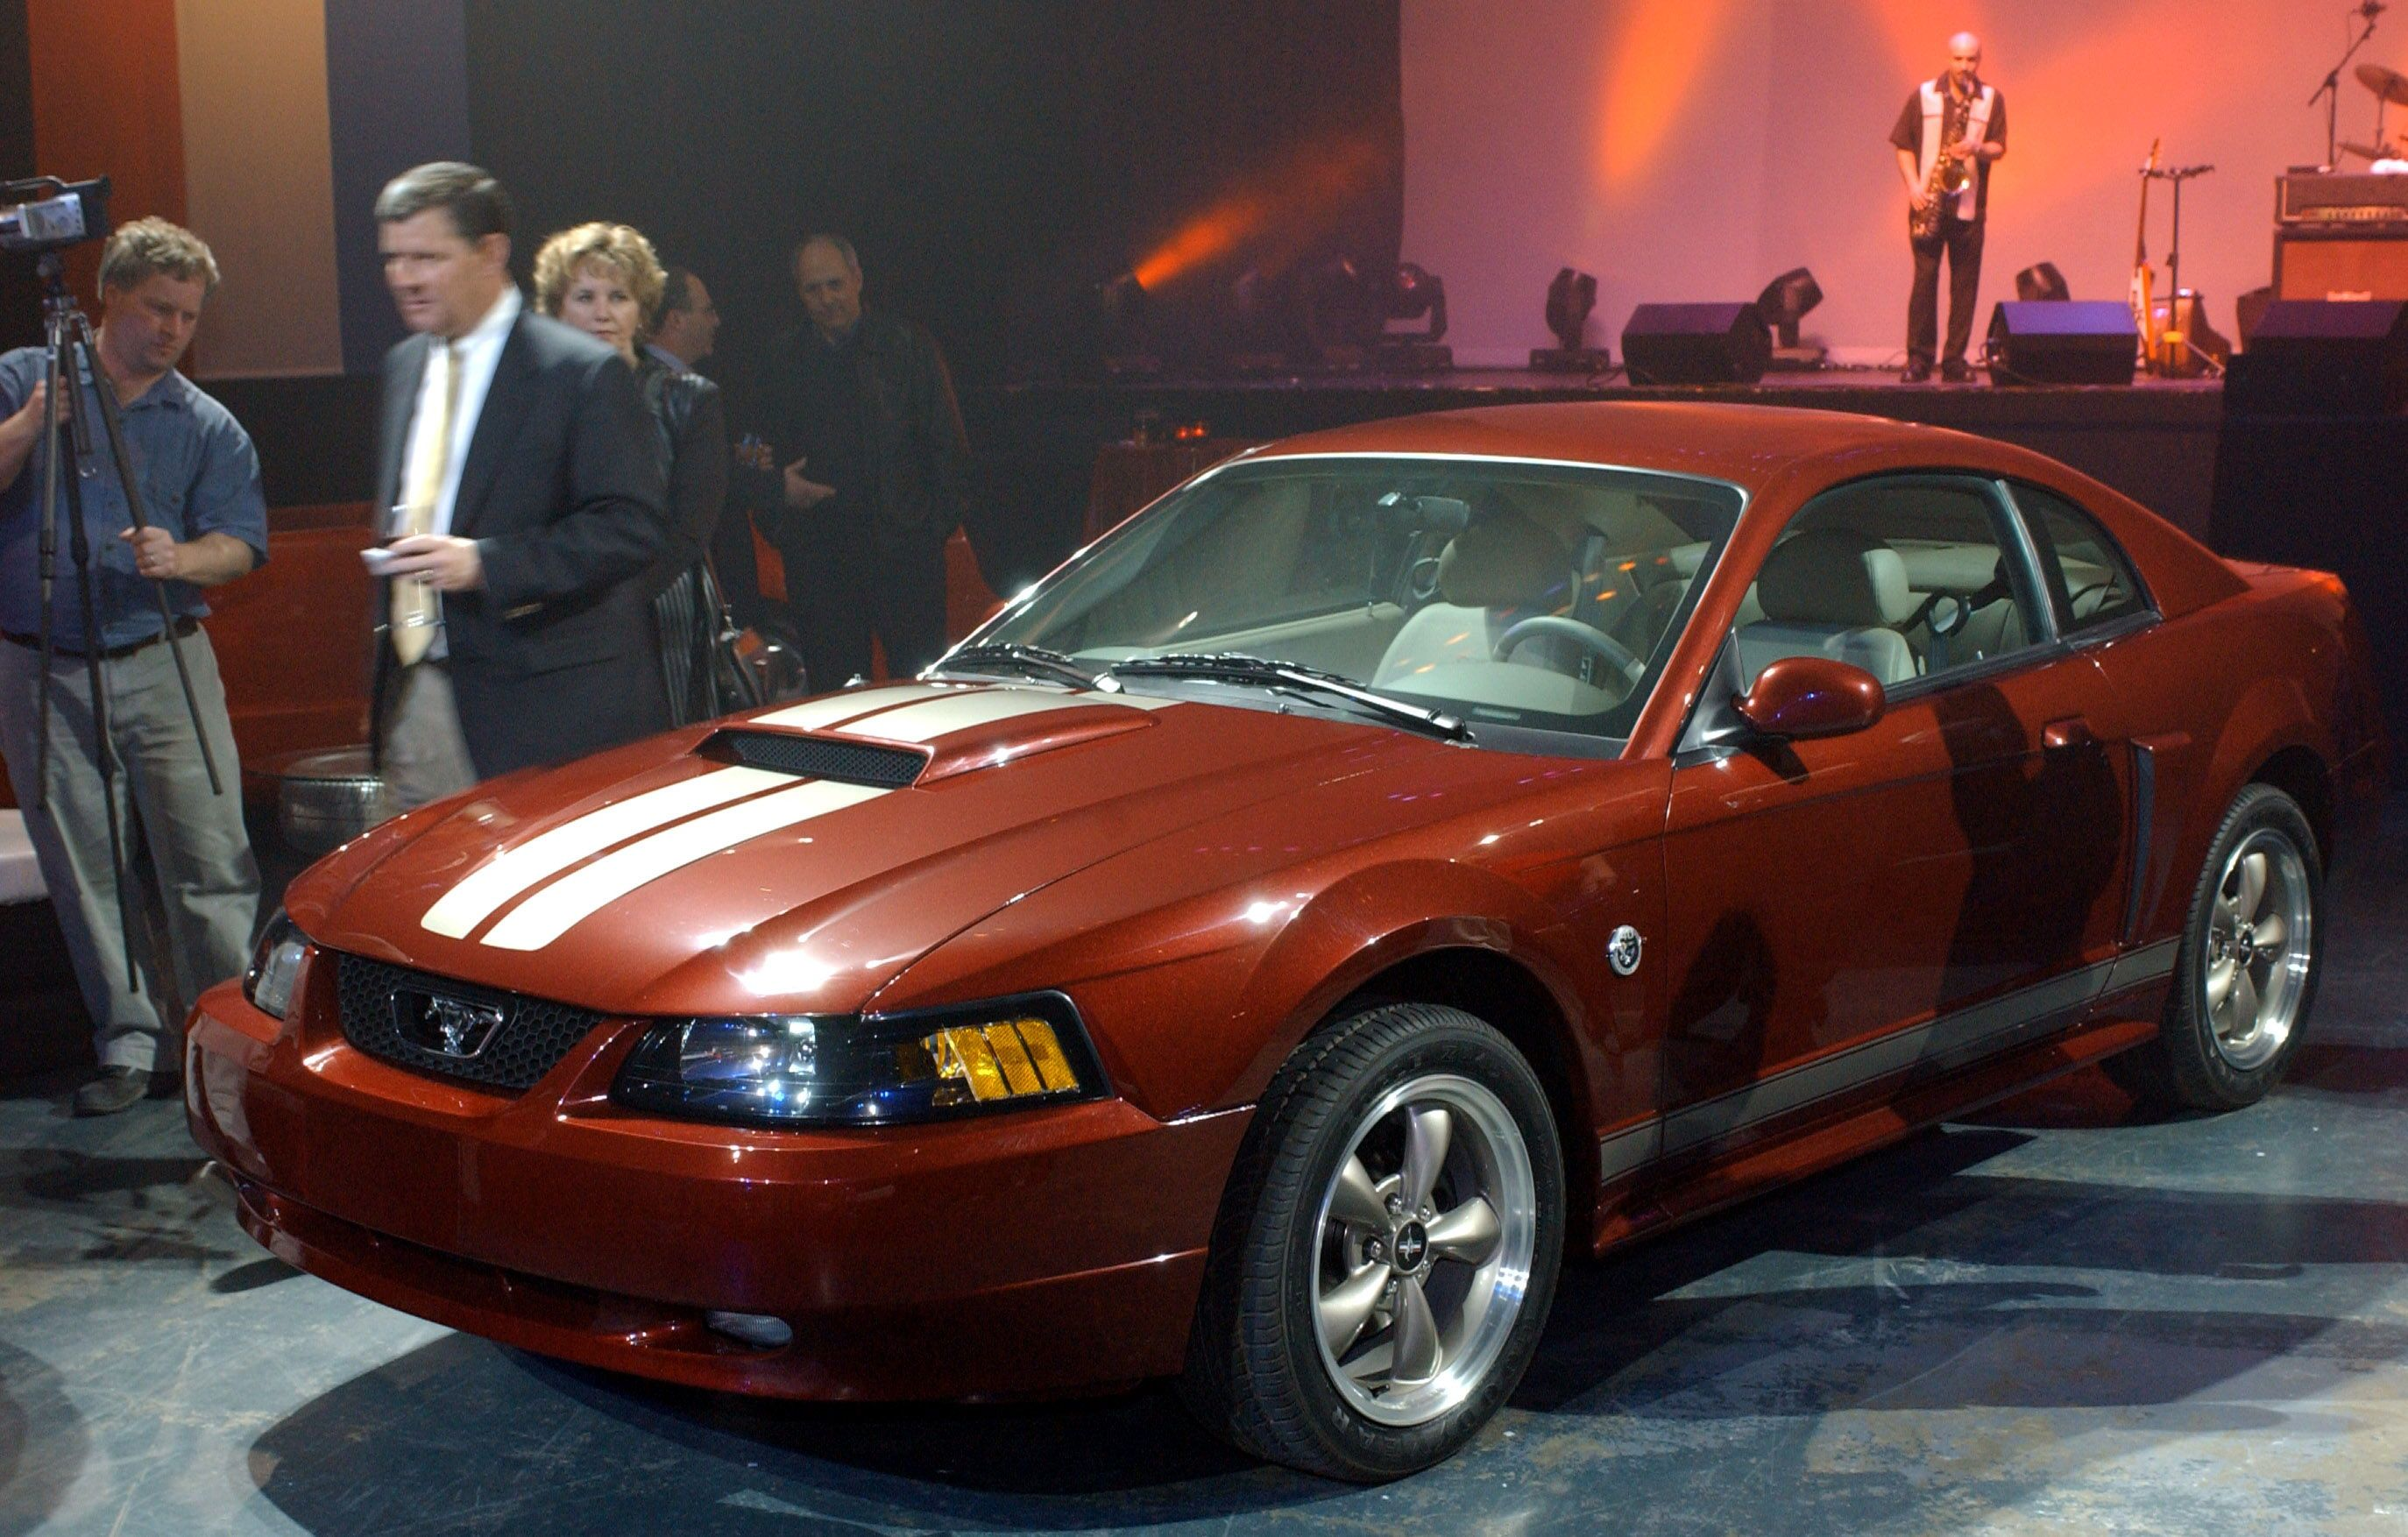 2004 Ford Mustang Gt 40th Anniversary In 2020 2004 Ford Mustang Ford Mustang Ford Mustang Gt